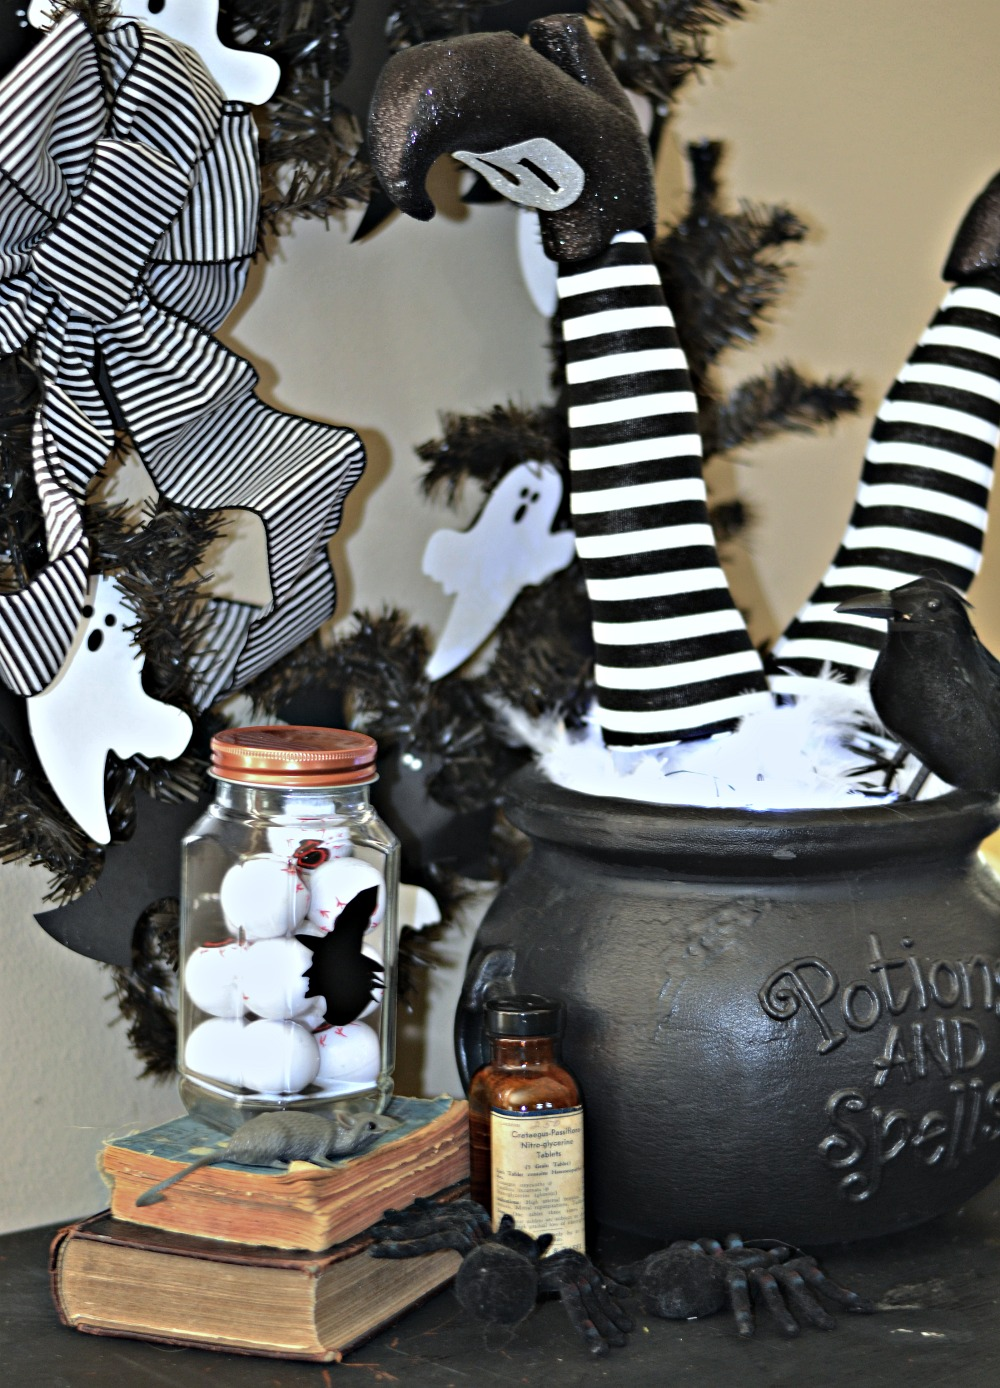 easy diy witch feet in cauldron halloween decoration rachel teodoro. Black Bedroom Furniture Sets. Home Design Ideas